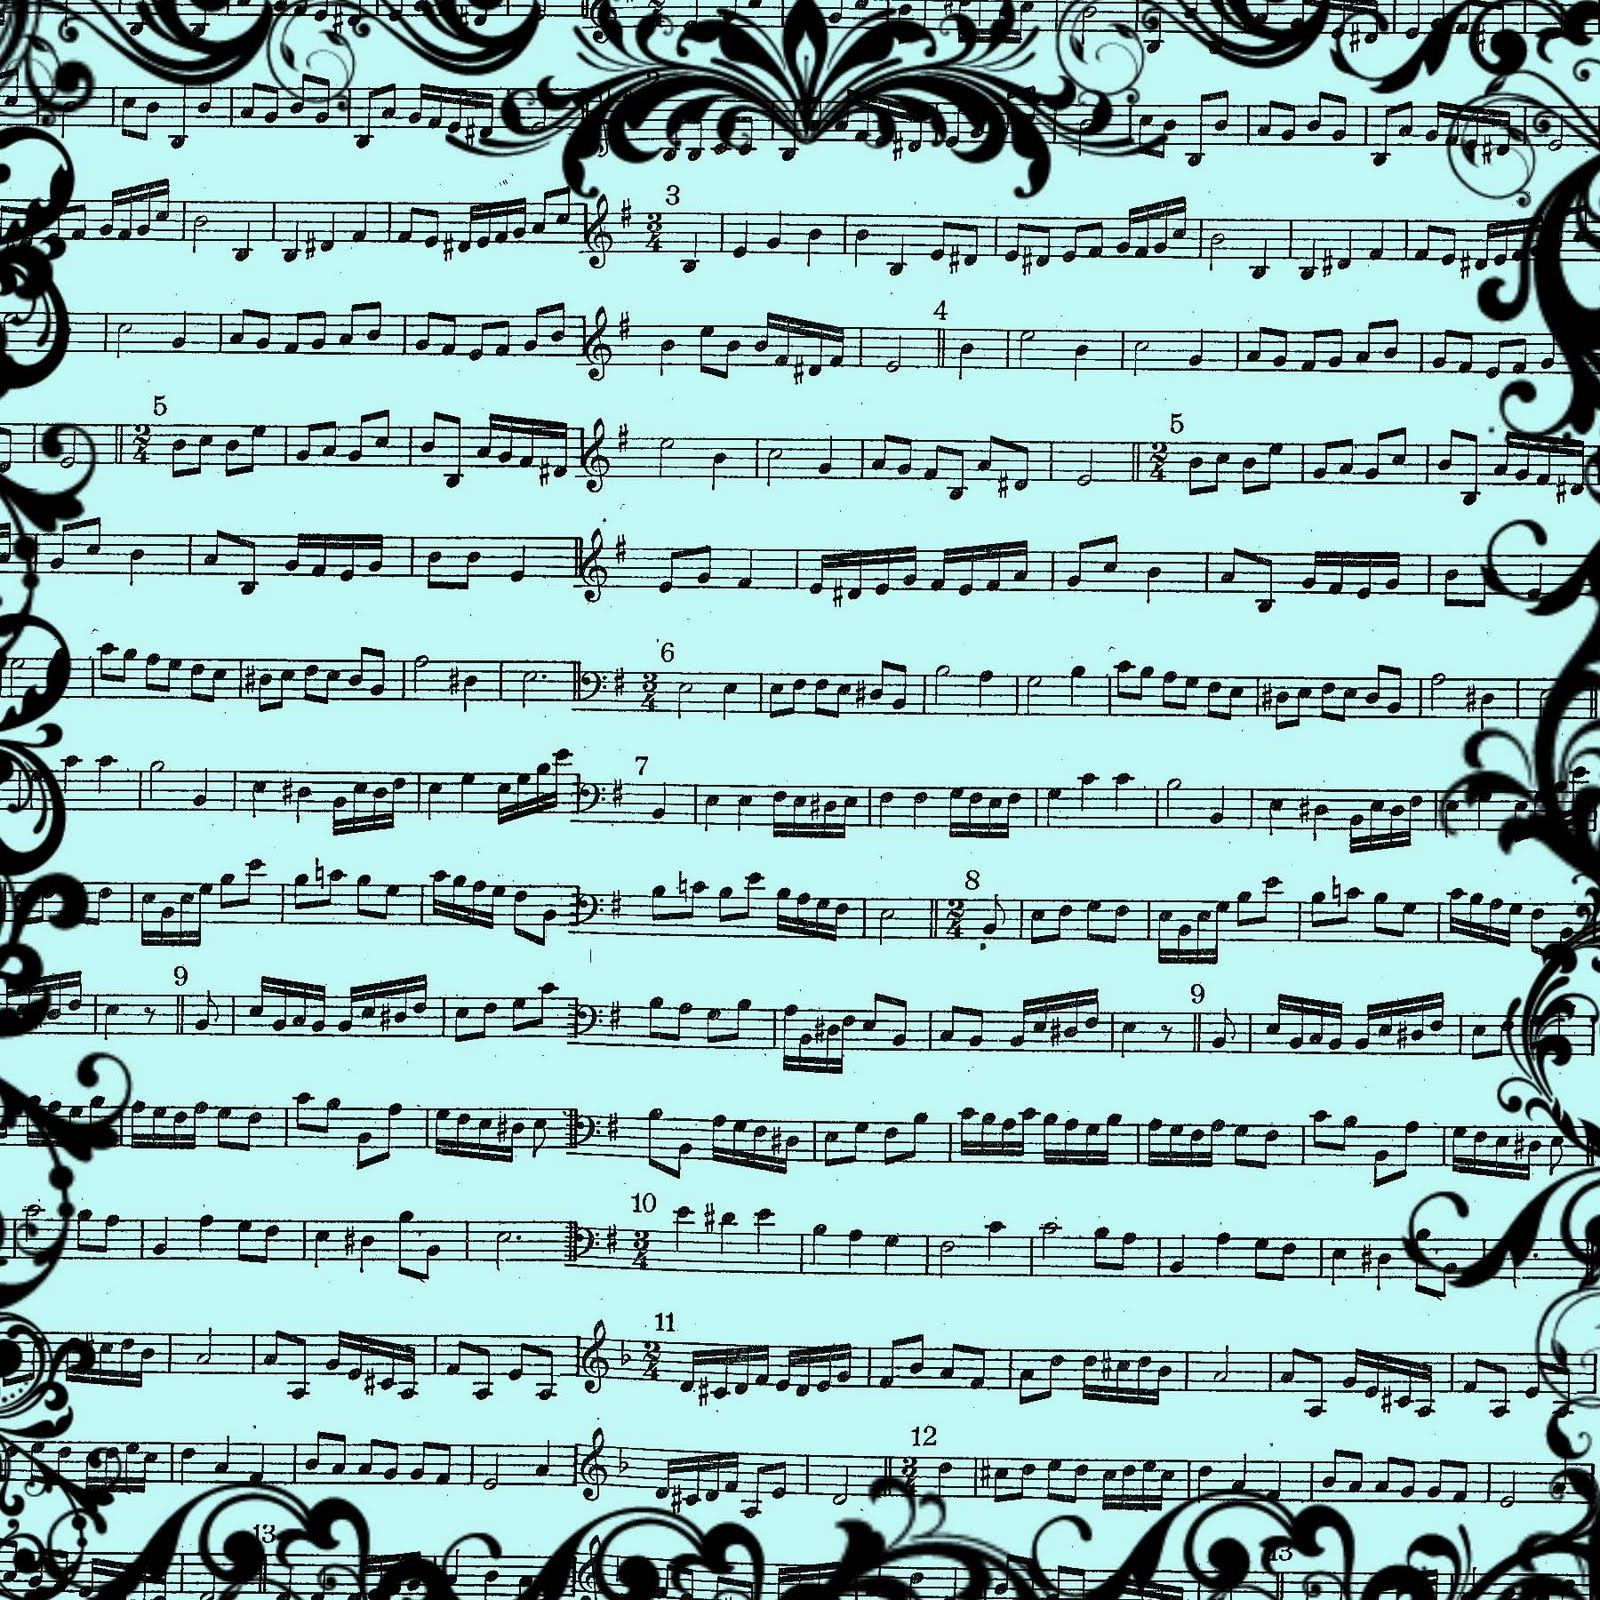 How to make scrapbook vintage - Free Digital Scrapbook Papers Save And Print High Resolution 300 Dpi Jpg Image These Vintage Sheet Music Images Would Make Very Nice Vin